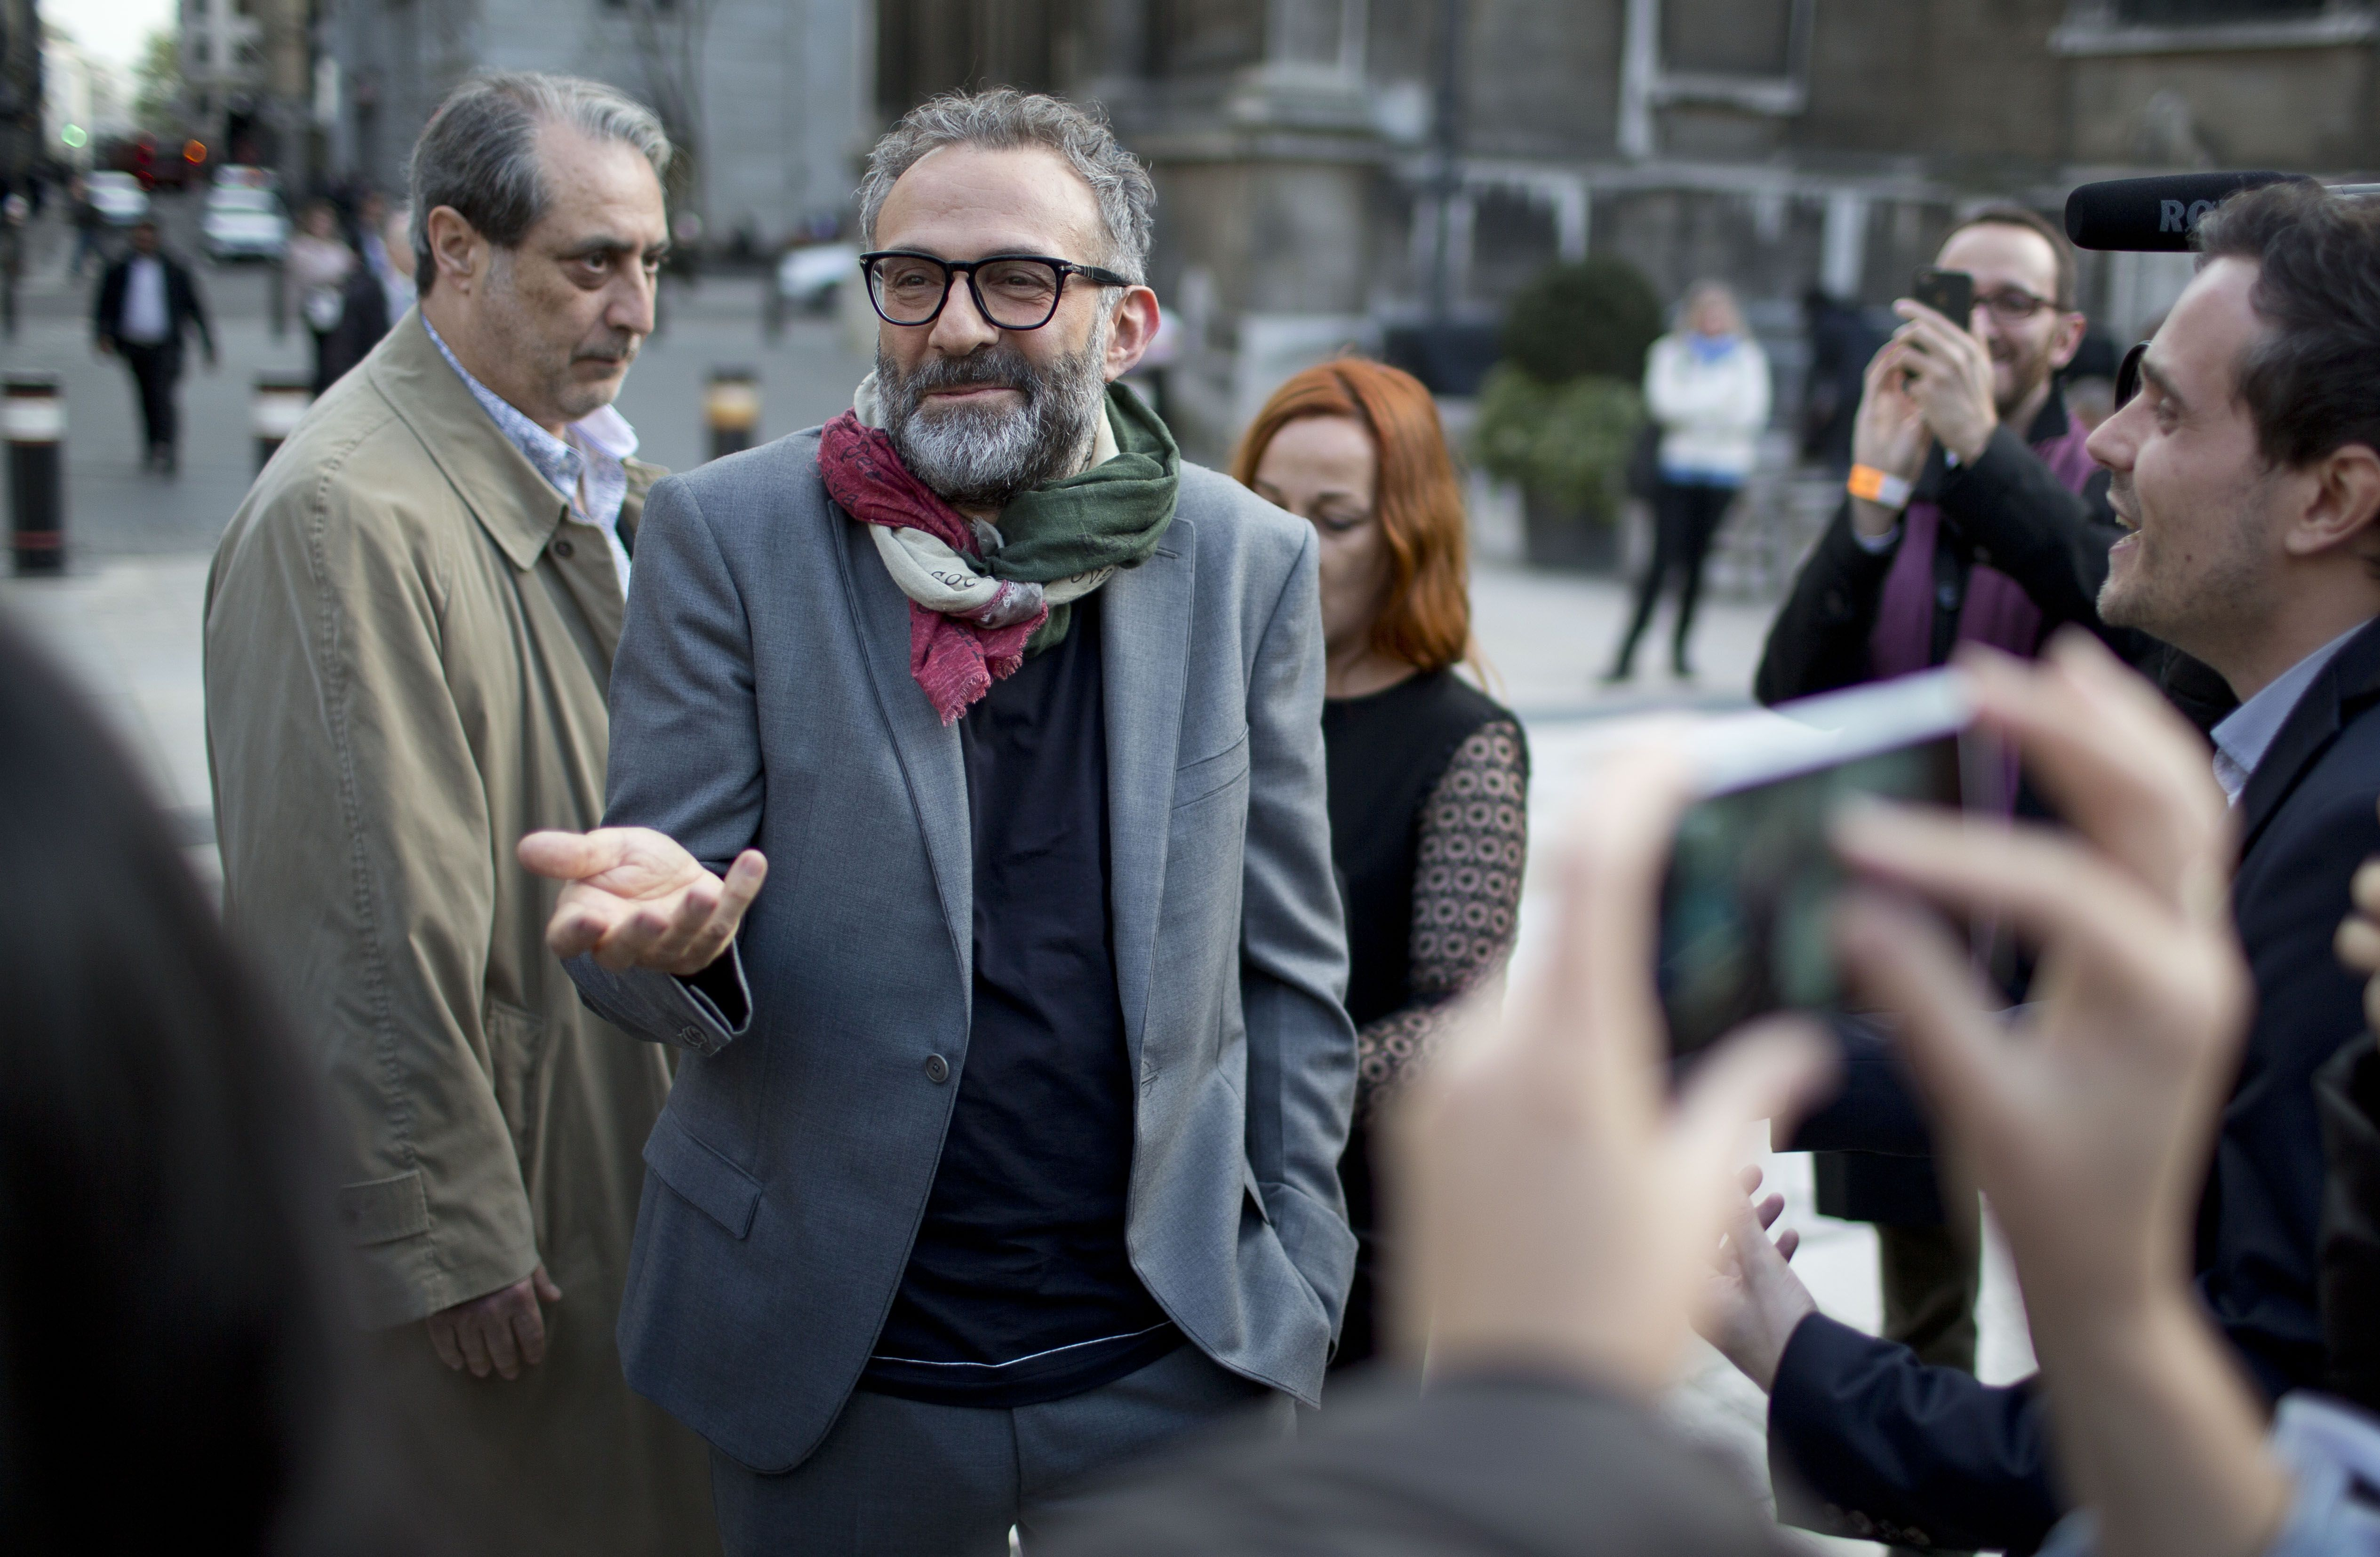 Massimo Bottura, whose restaurant Osteria Francescana received the 3rd price for best restaurant 2014, entering the guildhall #worlds50best